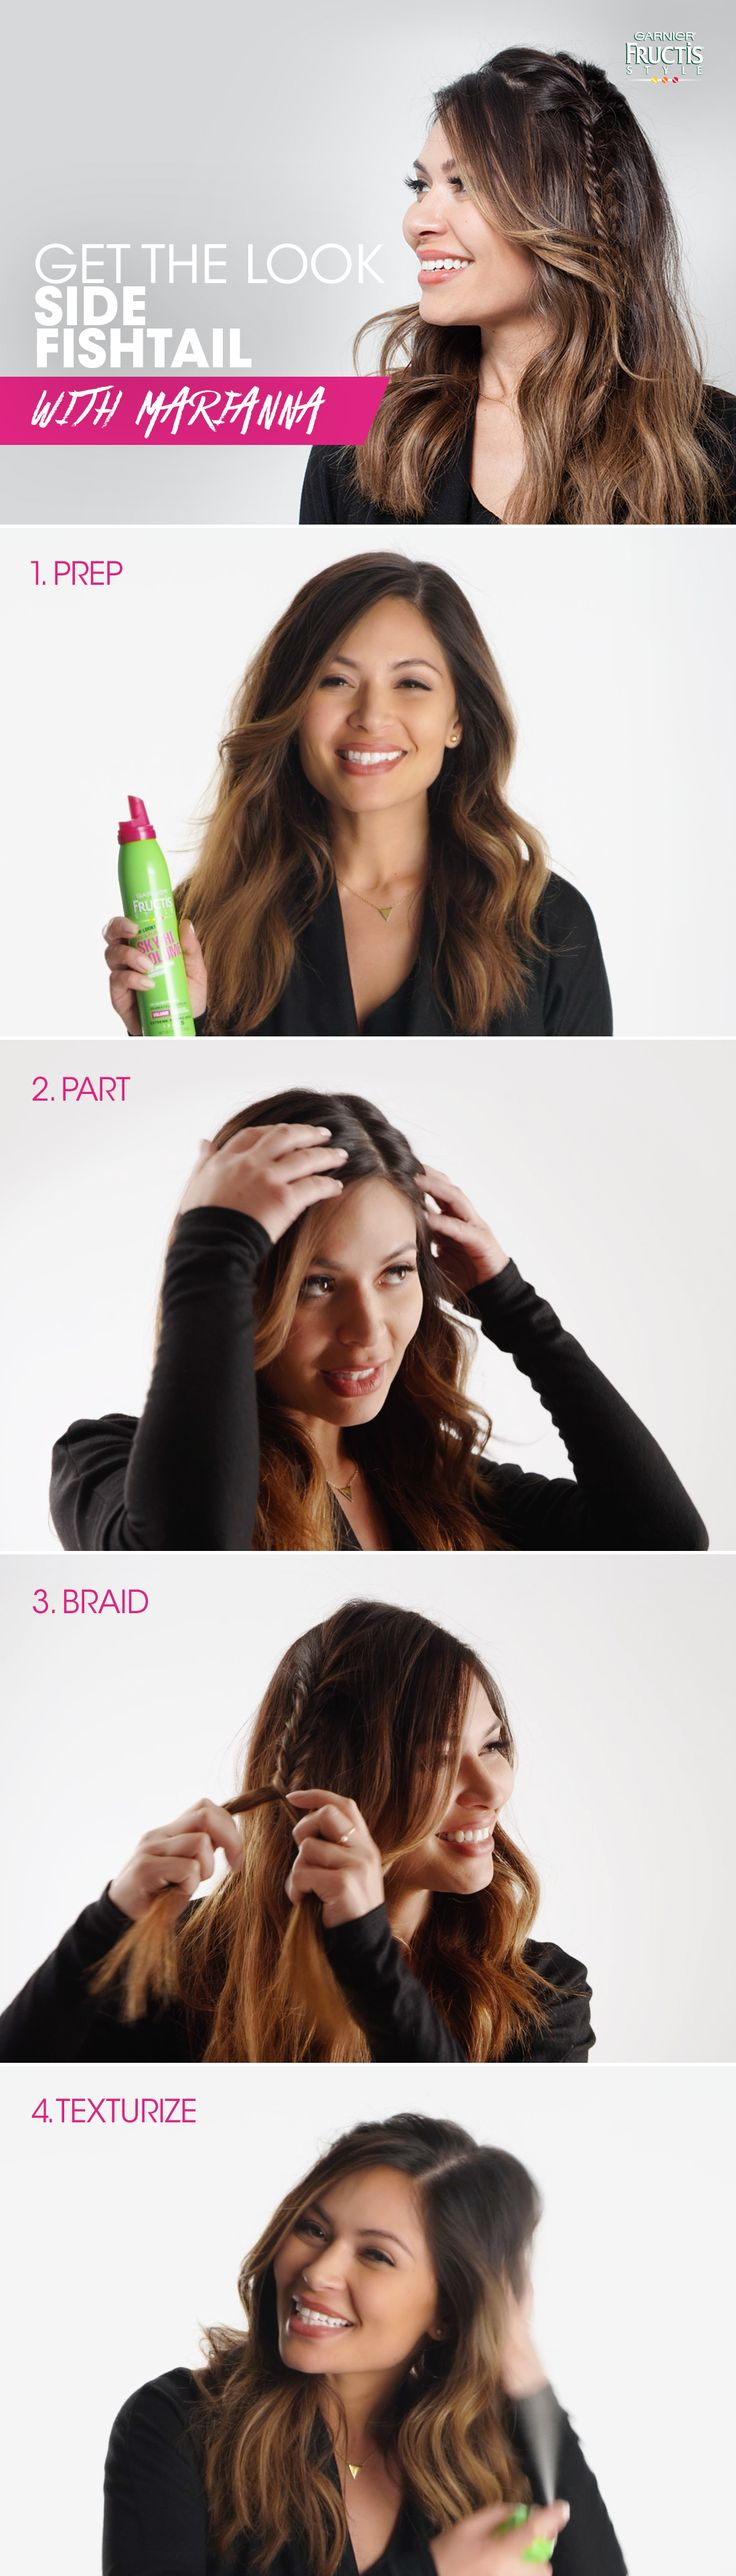 Headed to a holiday party? Watch Marianna go from messy to mistletoe using Garnier Fructis Style products: 1) Apply Sky-Hi Volume Mousse to damp hair then blow-dry. 2) Create a deep side part and separate hair into two sections. 3) Create a fishtail braid, then secure with a clear elastic. Pull hair apart to create a wider braid. 4) Add extra volume to unbraided hair with De-Constructed Texture Tease.